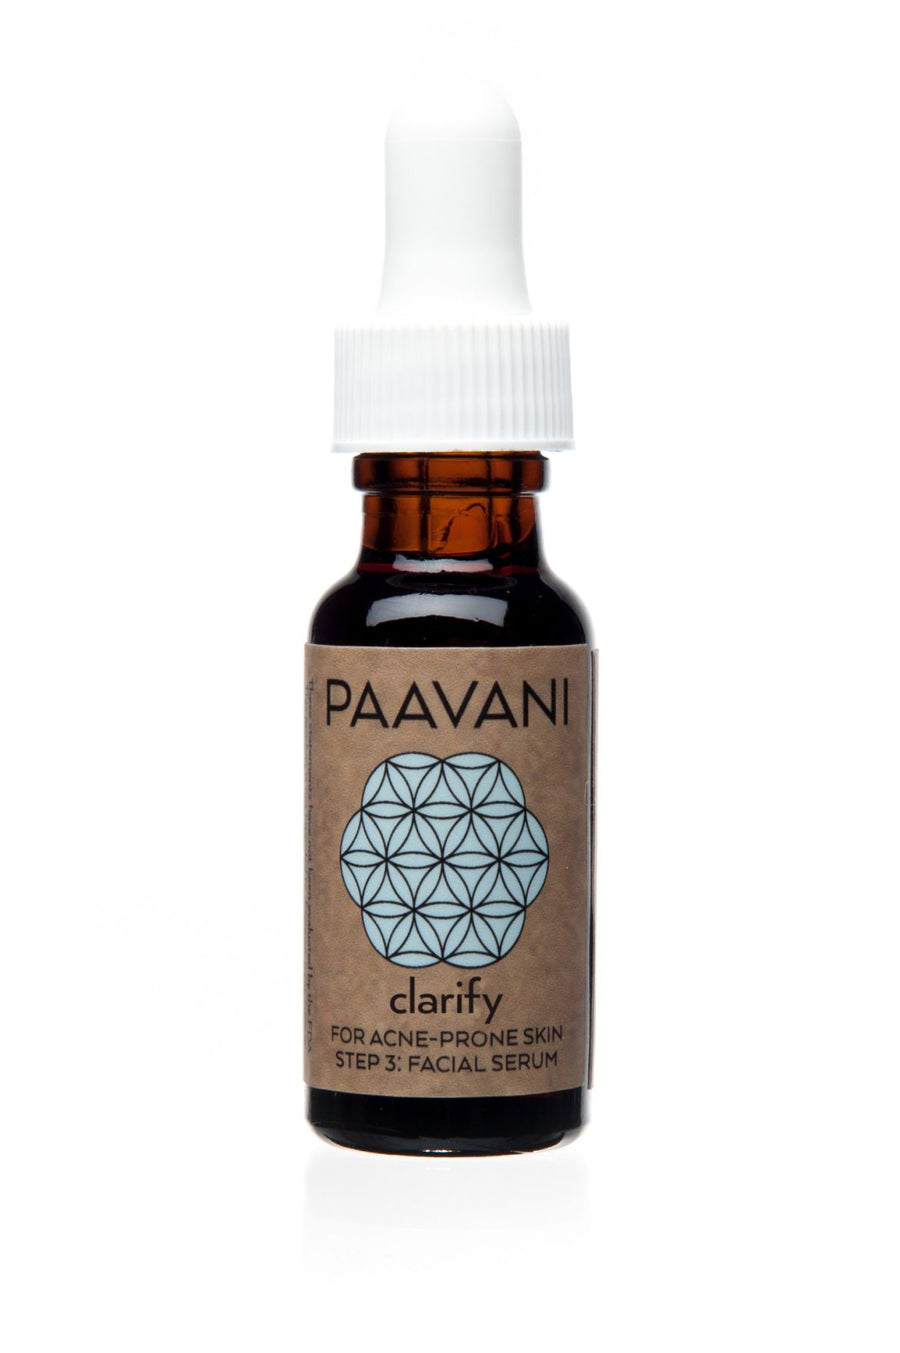 paavani clarify serum